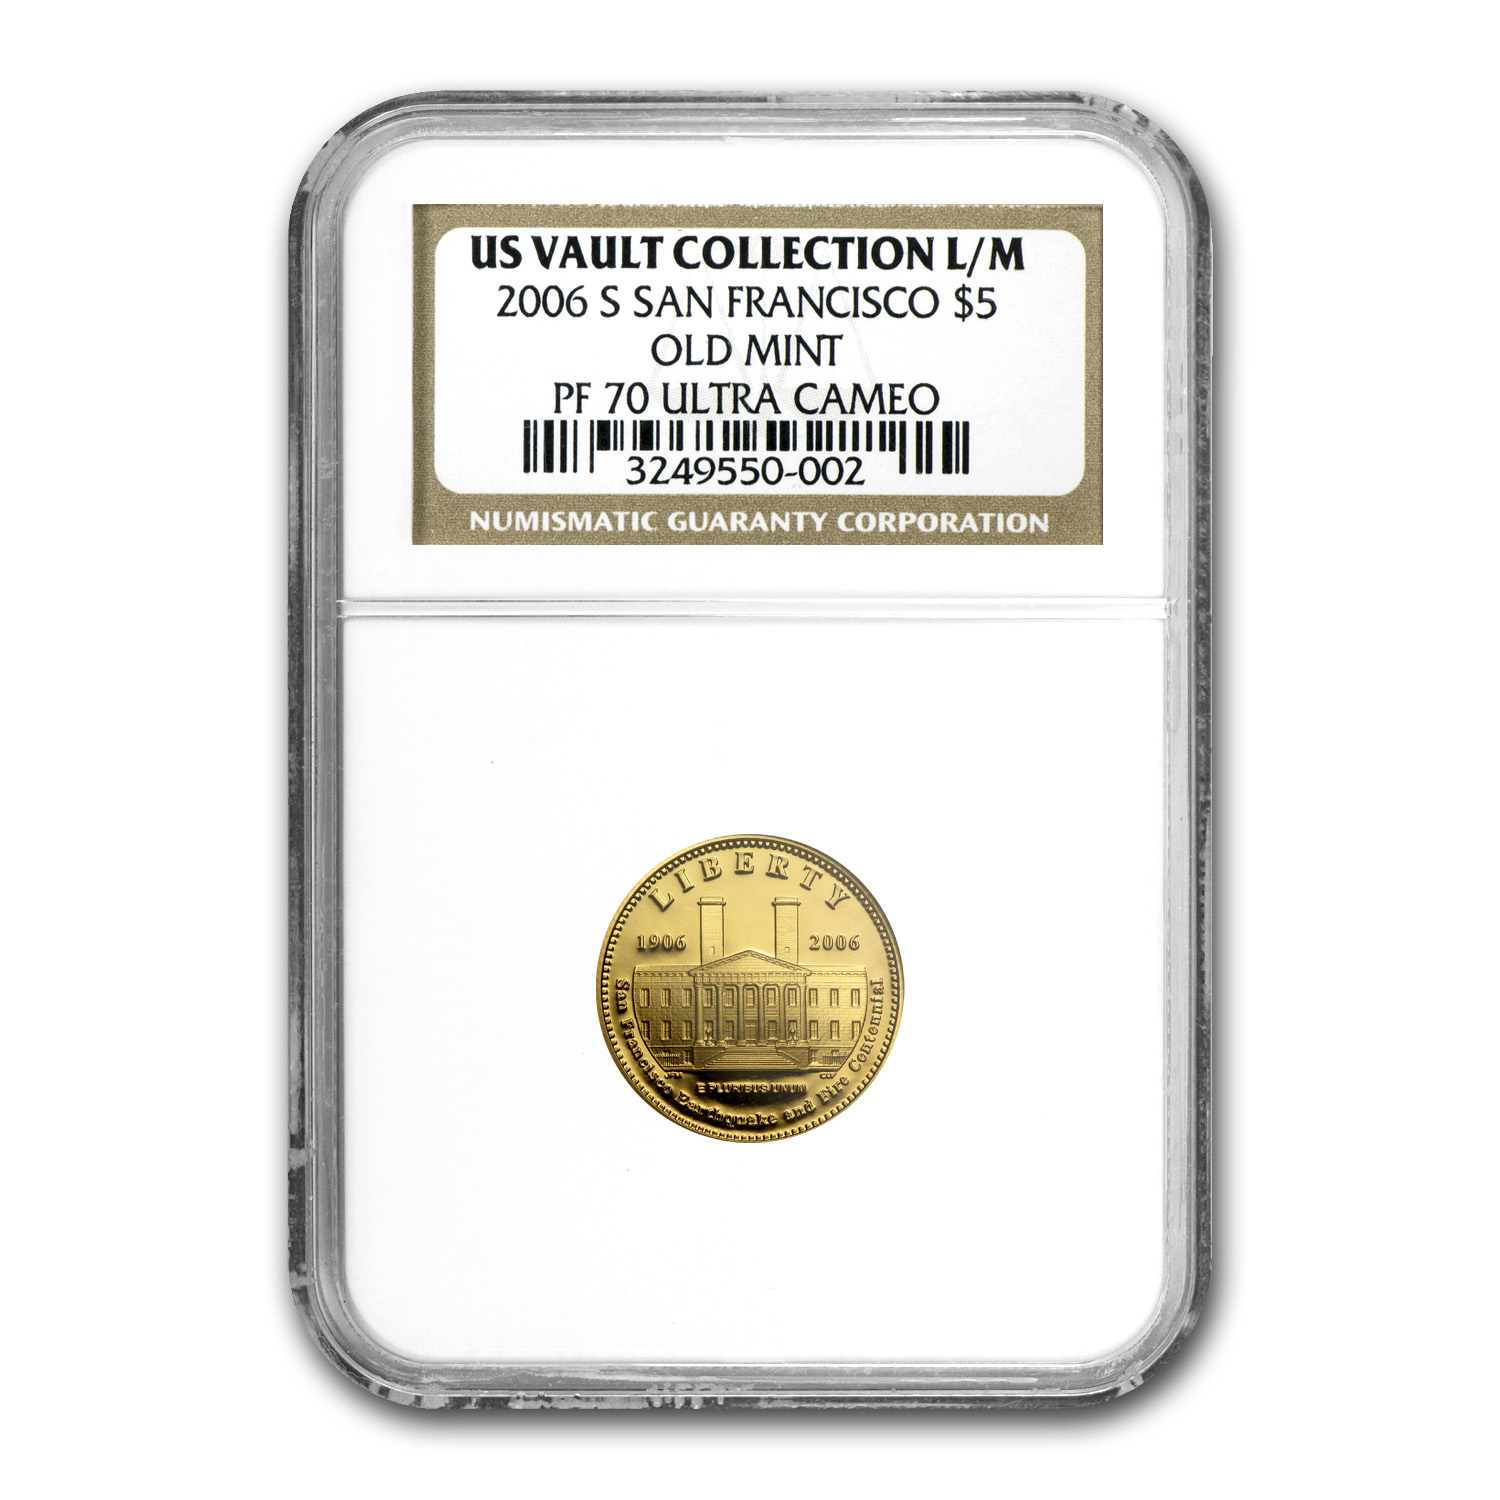 2006-S San Francisco Old Mint - $5 Gold Commem - PF-70 UCAM NGC